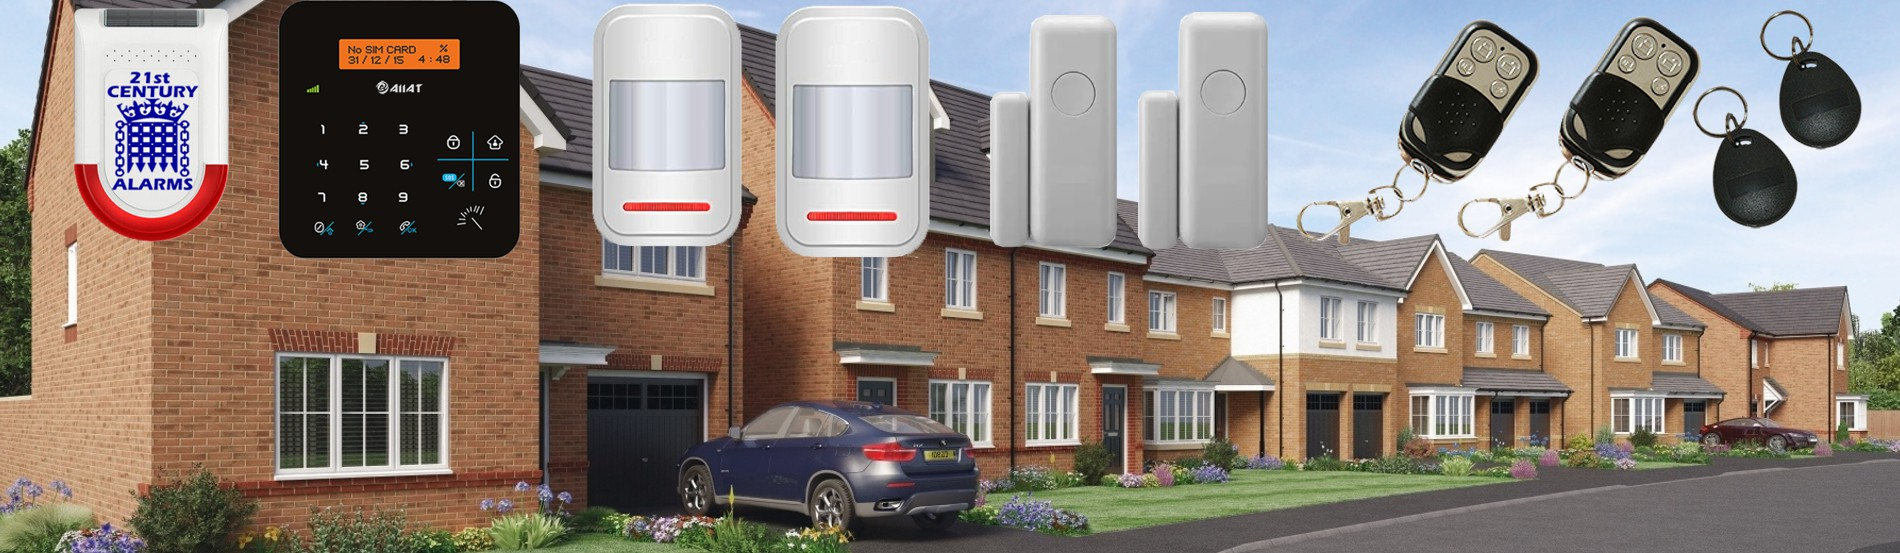 LuxHome LED Wireless Alarm System